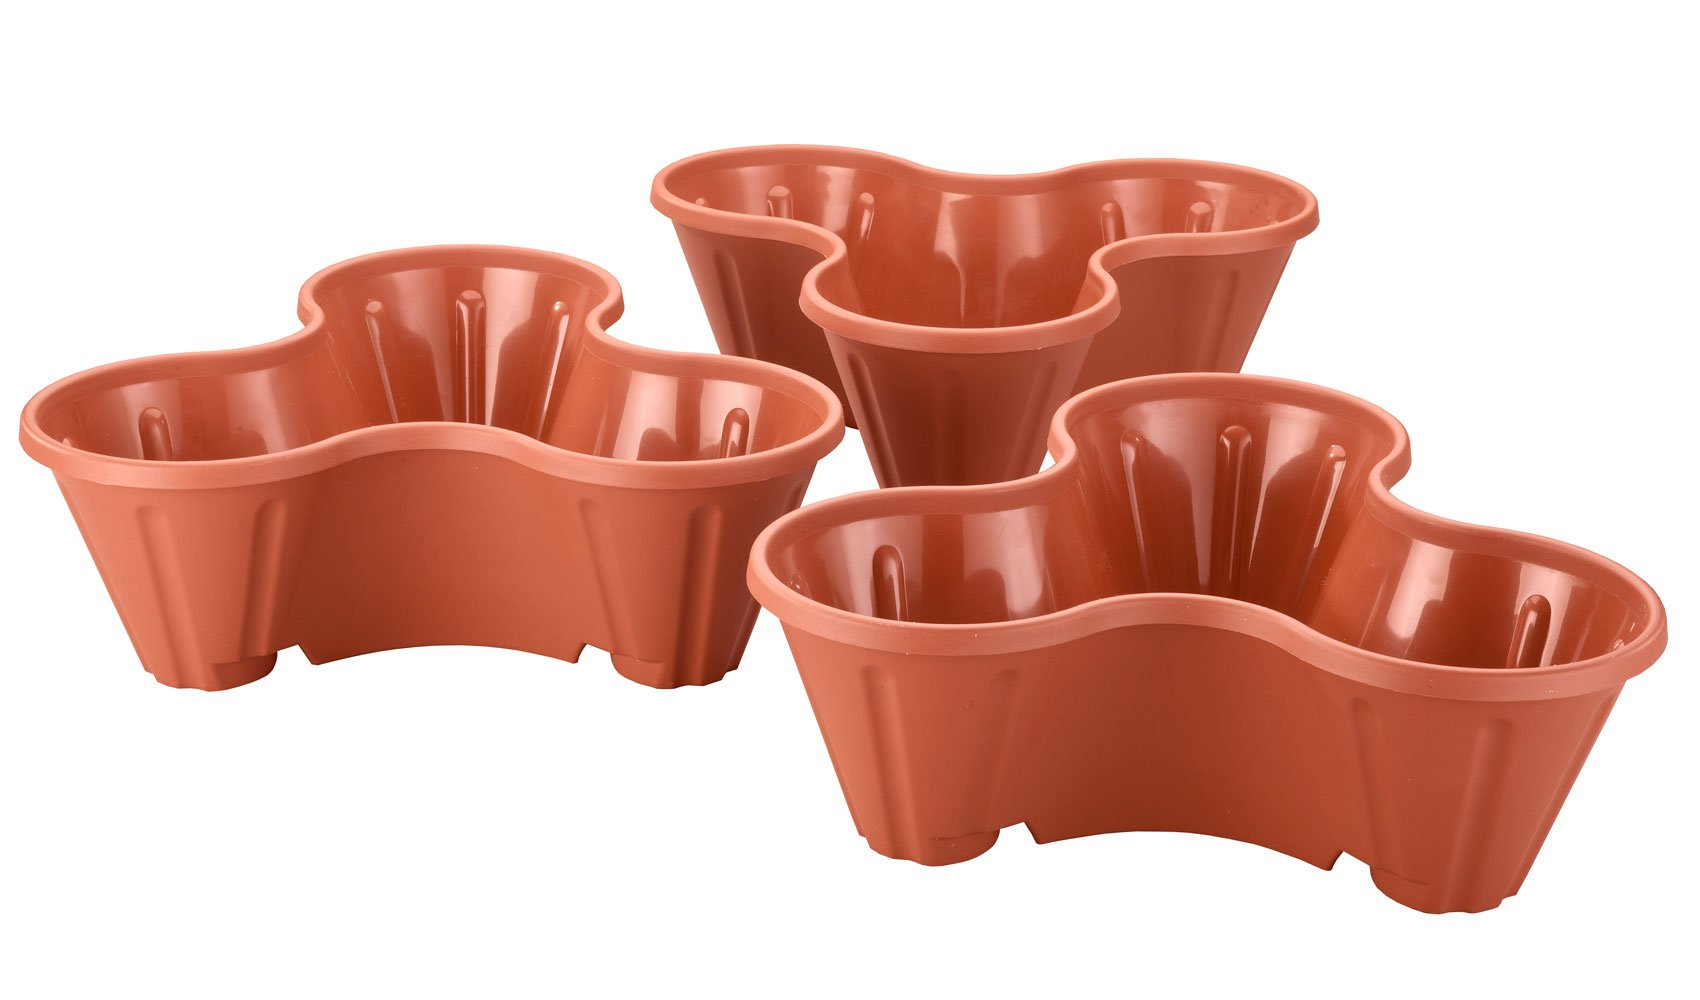 Miles Kimball Stackable Planters, Set of 3 by Miles Kimball